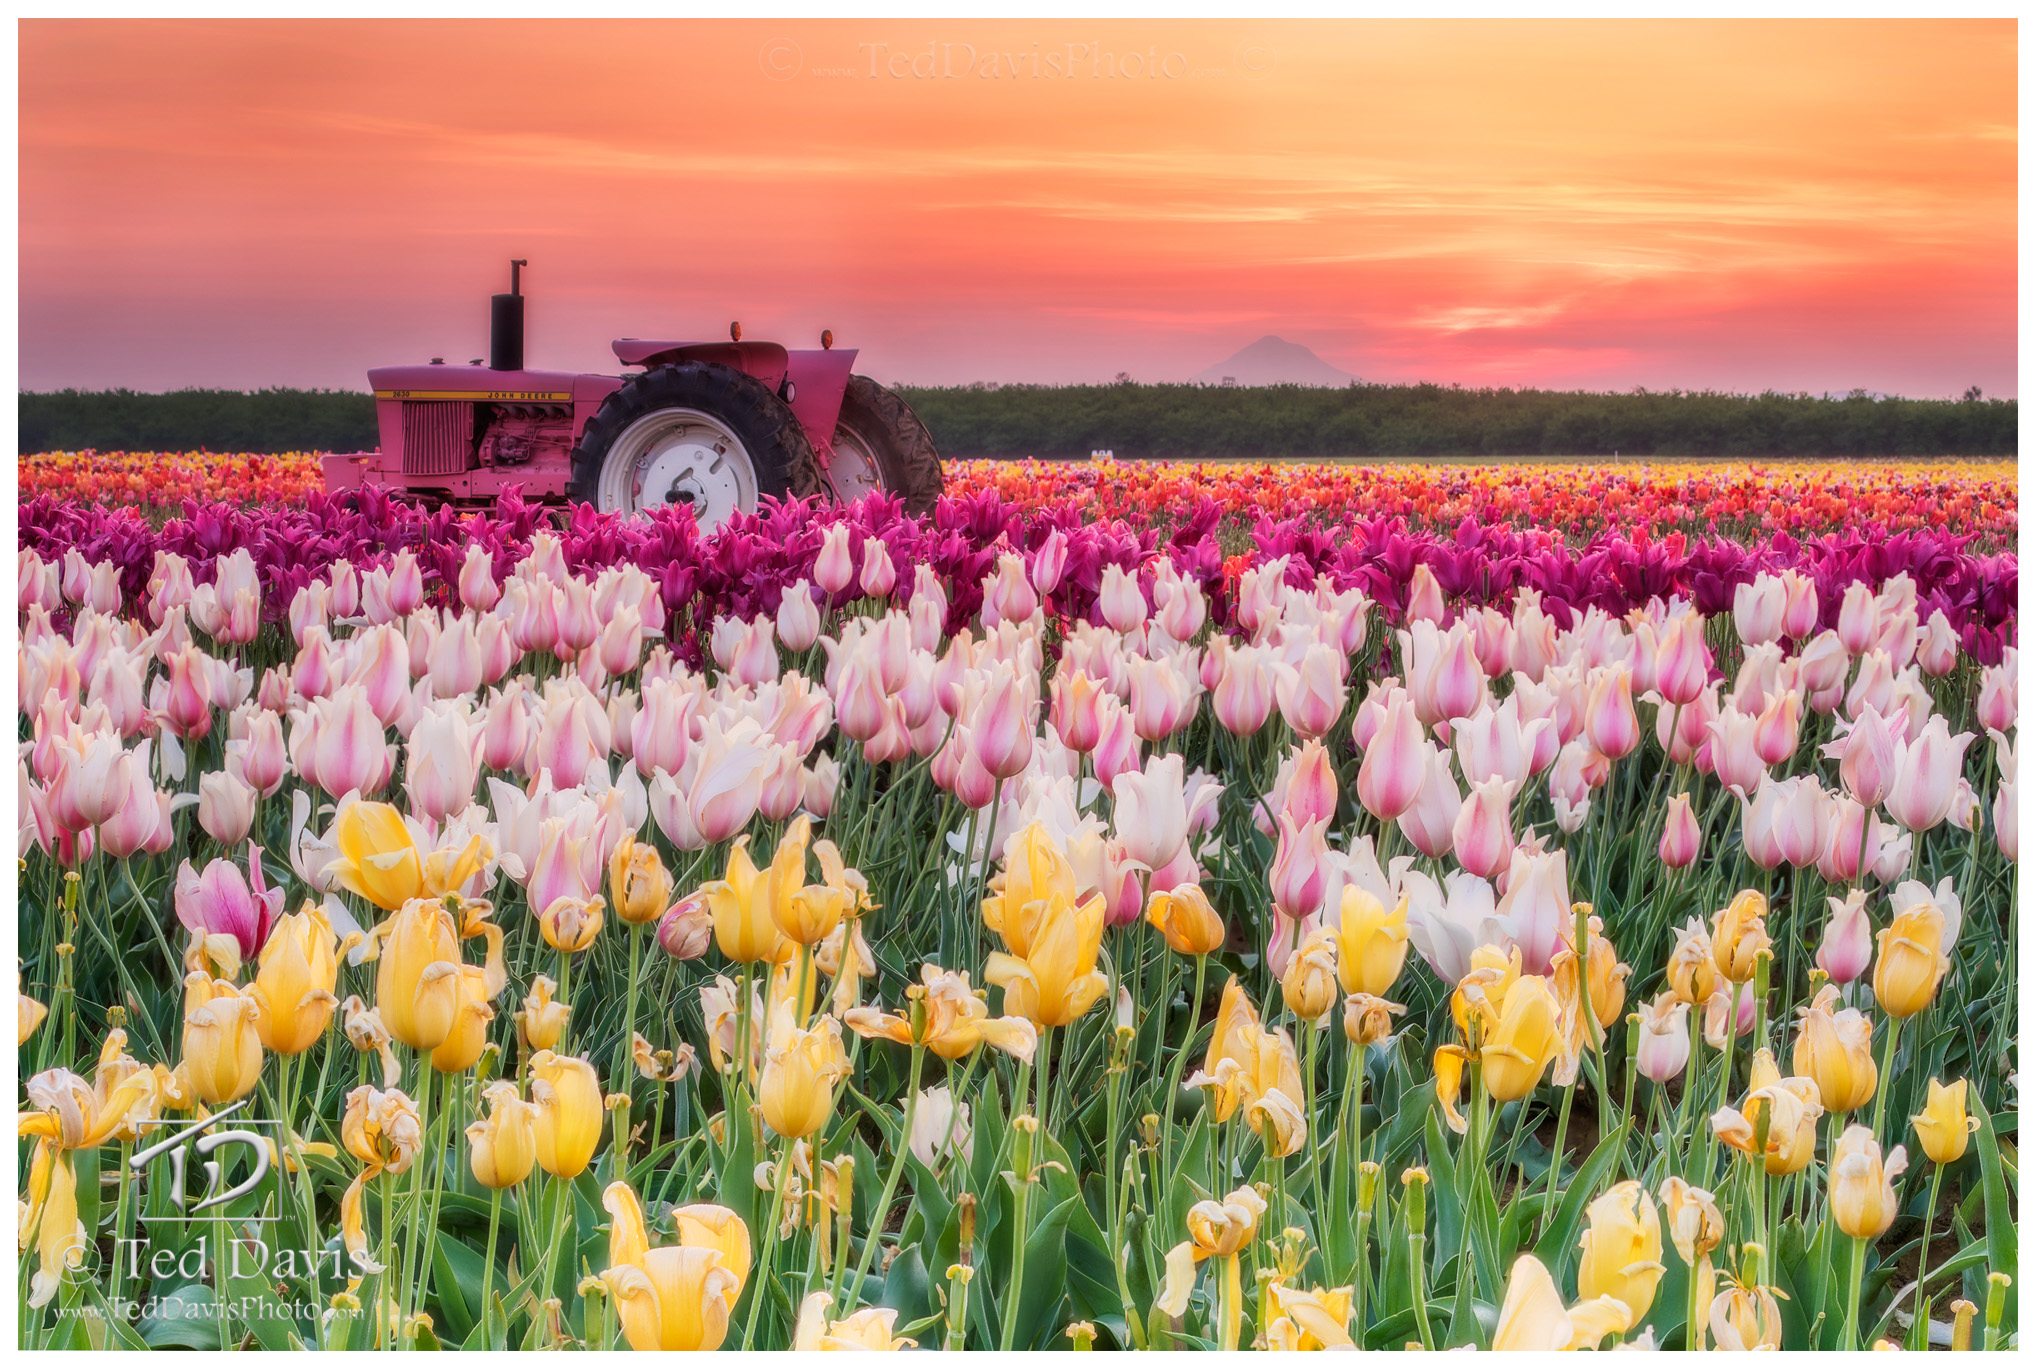 photograph, art, landscape, travel, sunrise, sunset, mountain, field, flowers, tractor, farmers, valley, Willamette, Oregon, trail, beautiful, claim, land, settle, focus, hood